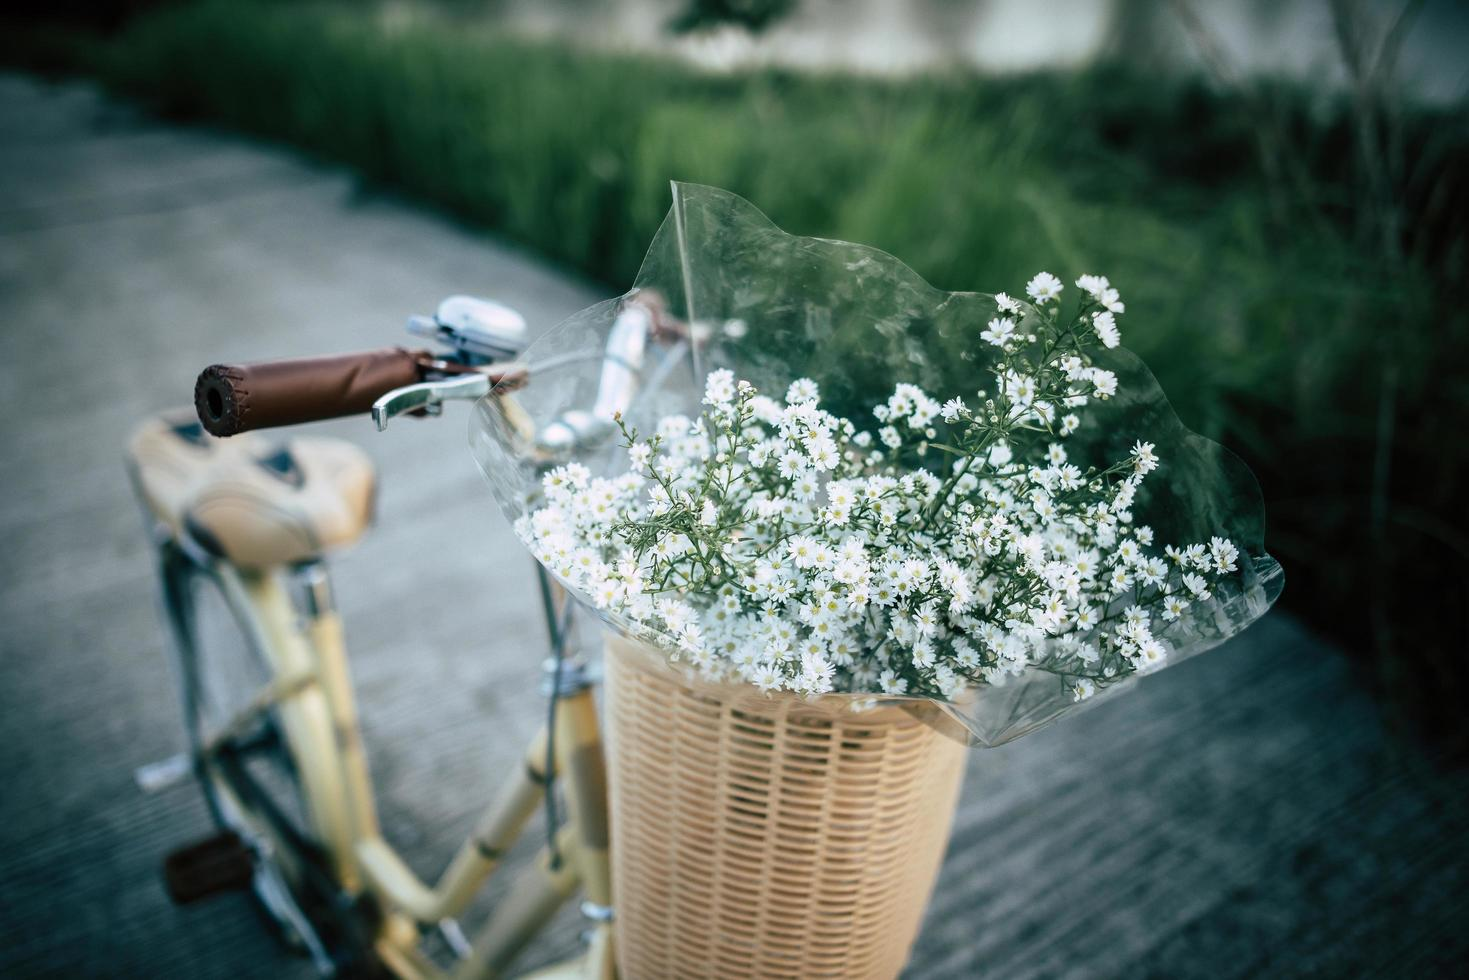 Vintage bicycle with a basket full of wild flowers photo